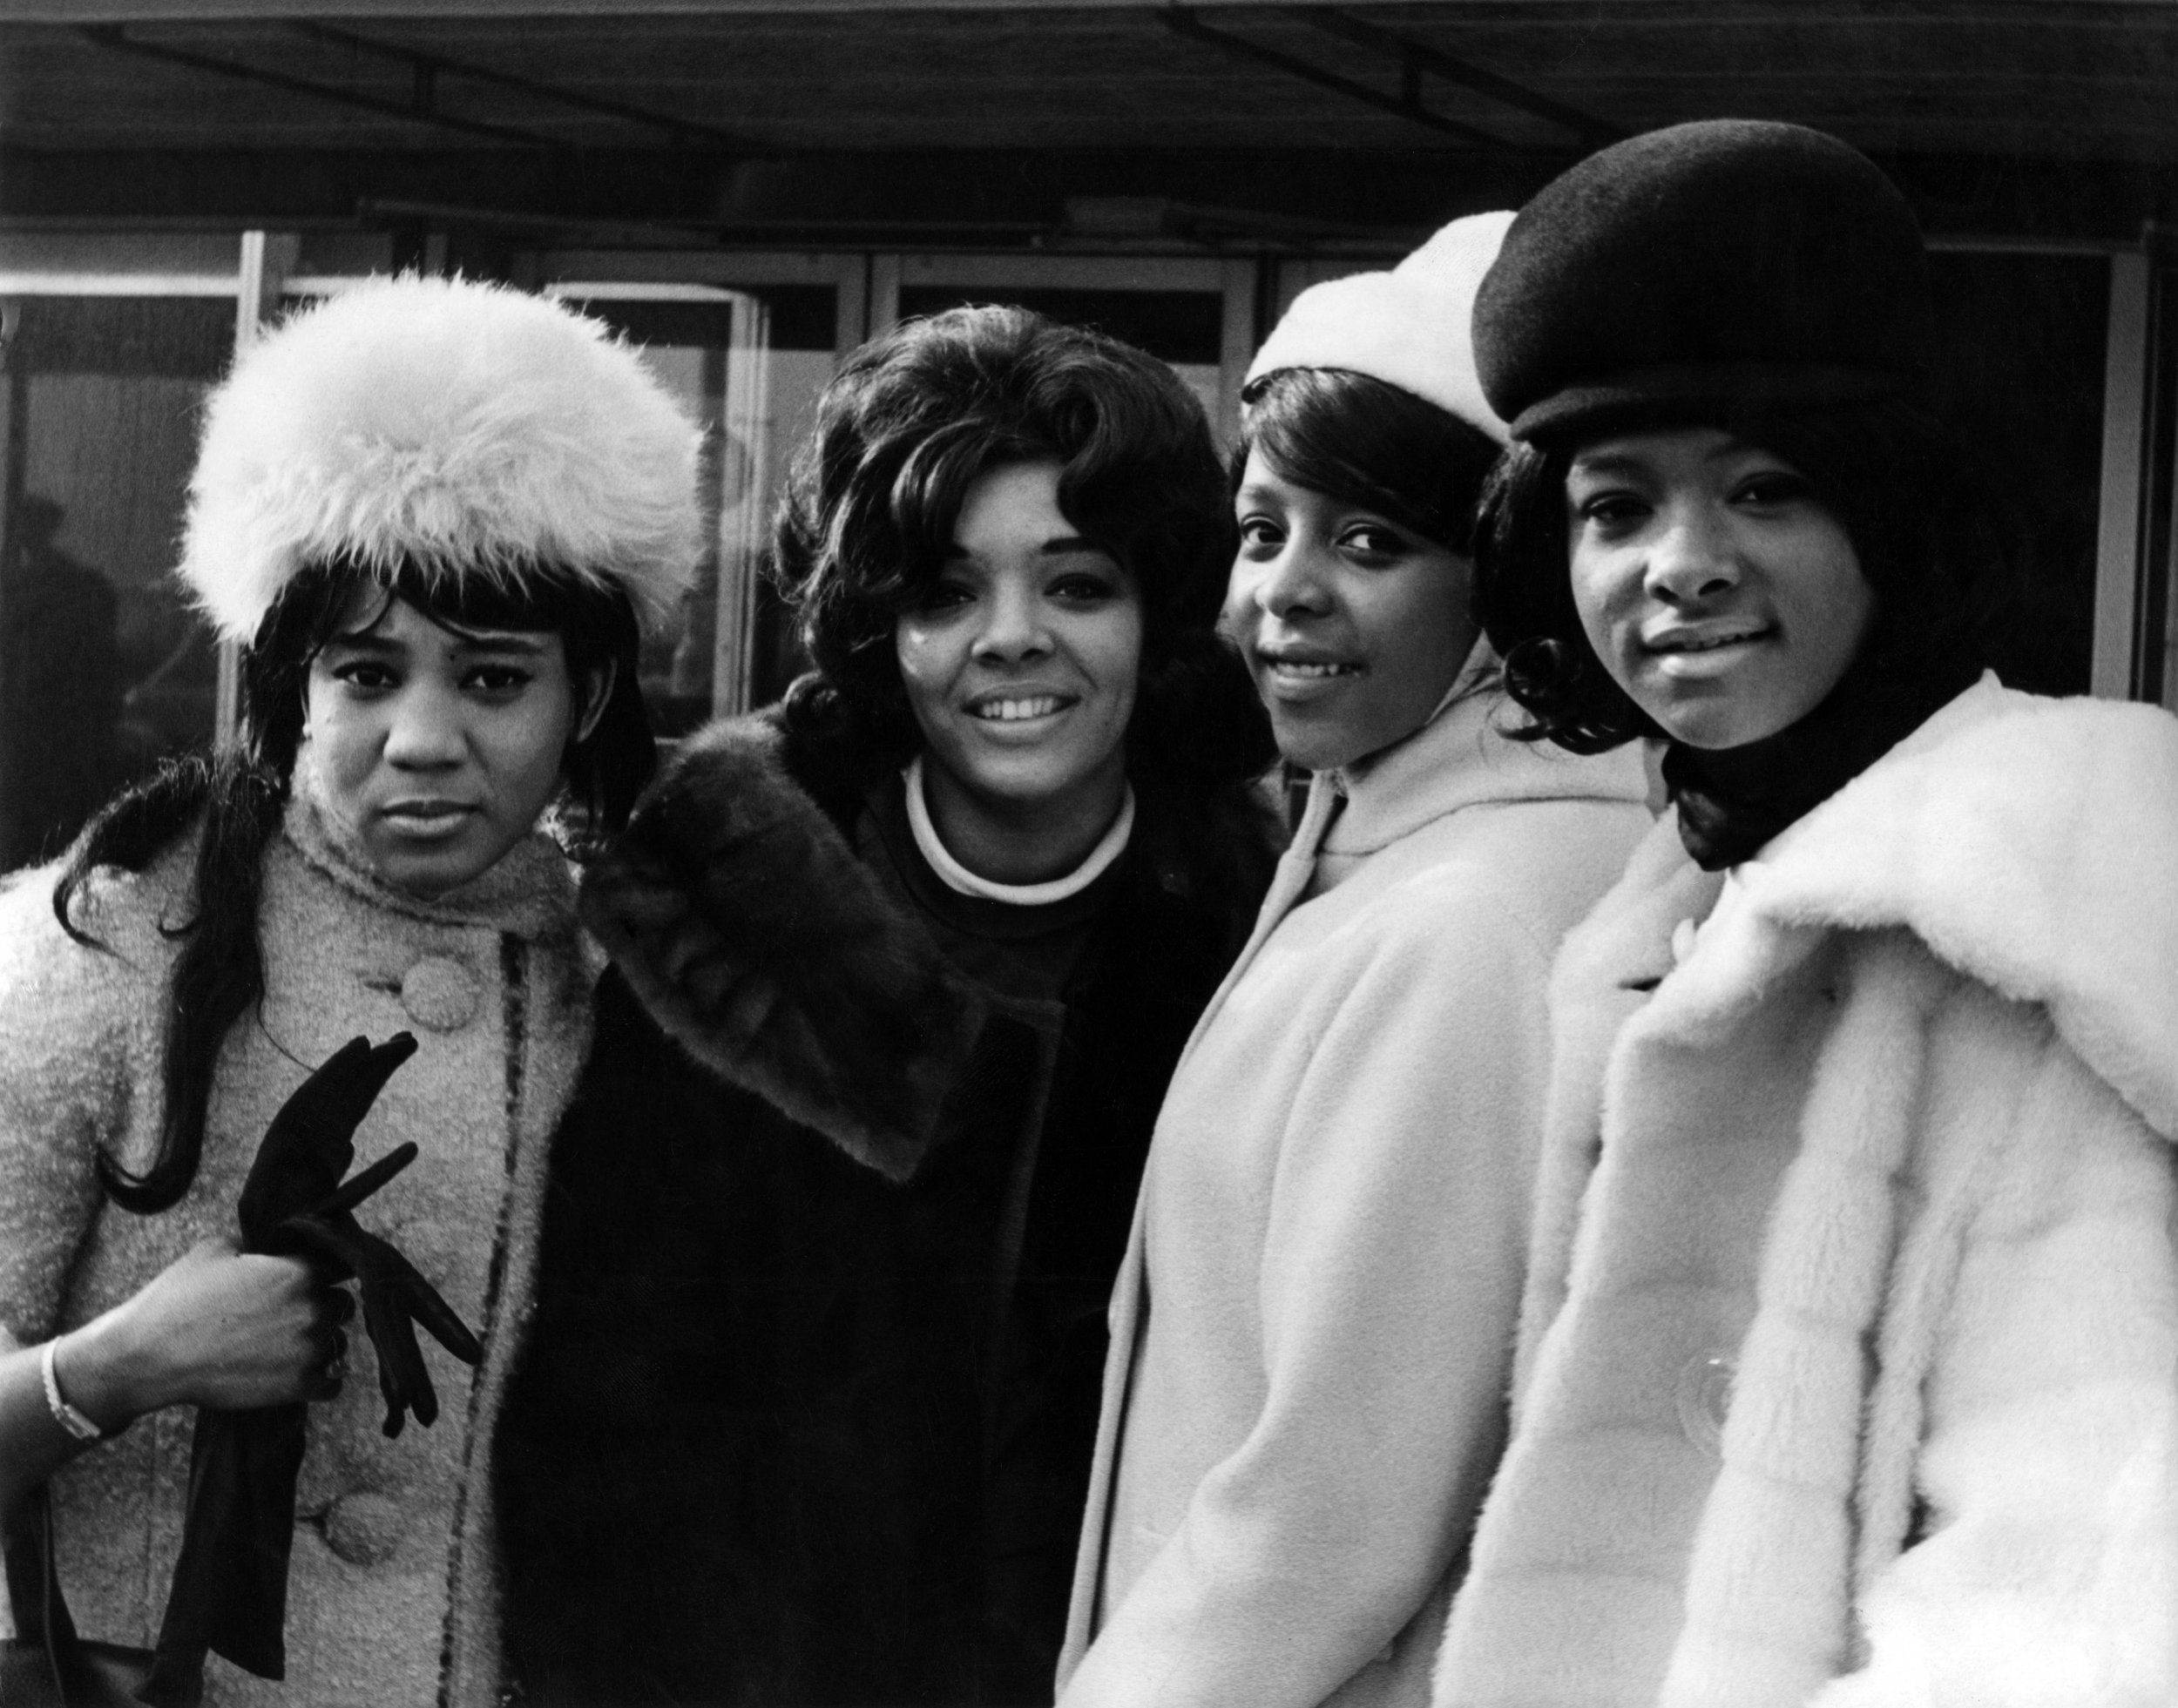 Barbara Alston, singer from The Crystals, dies aged 74